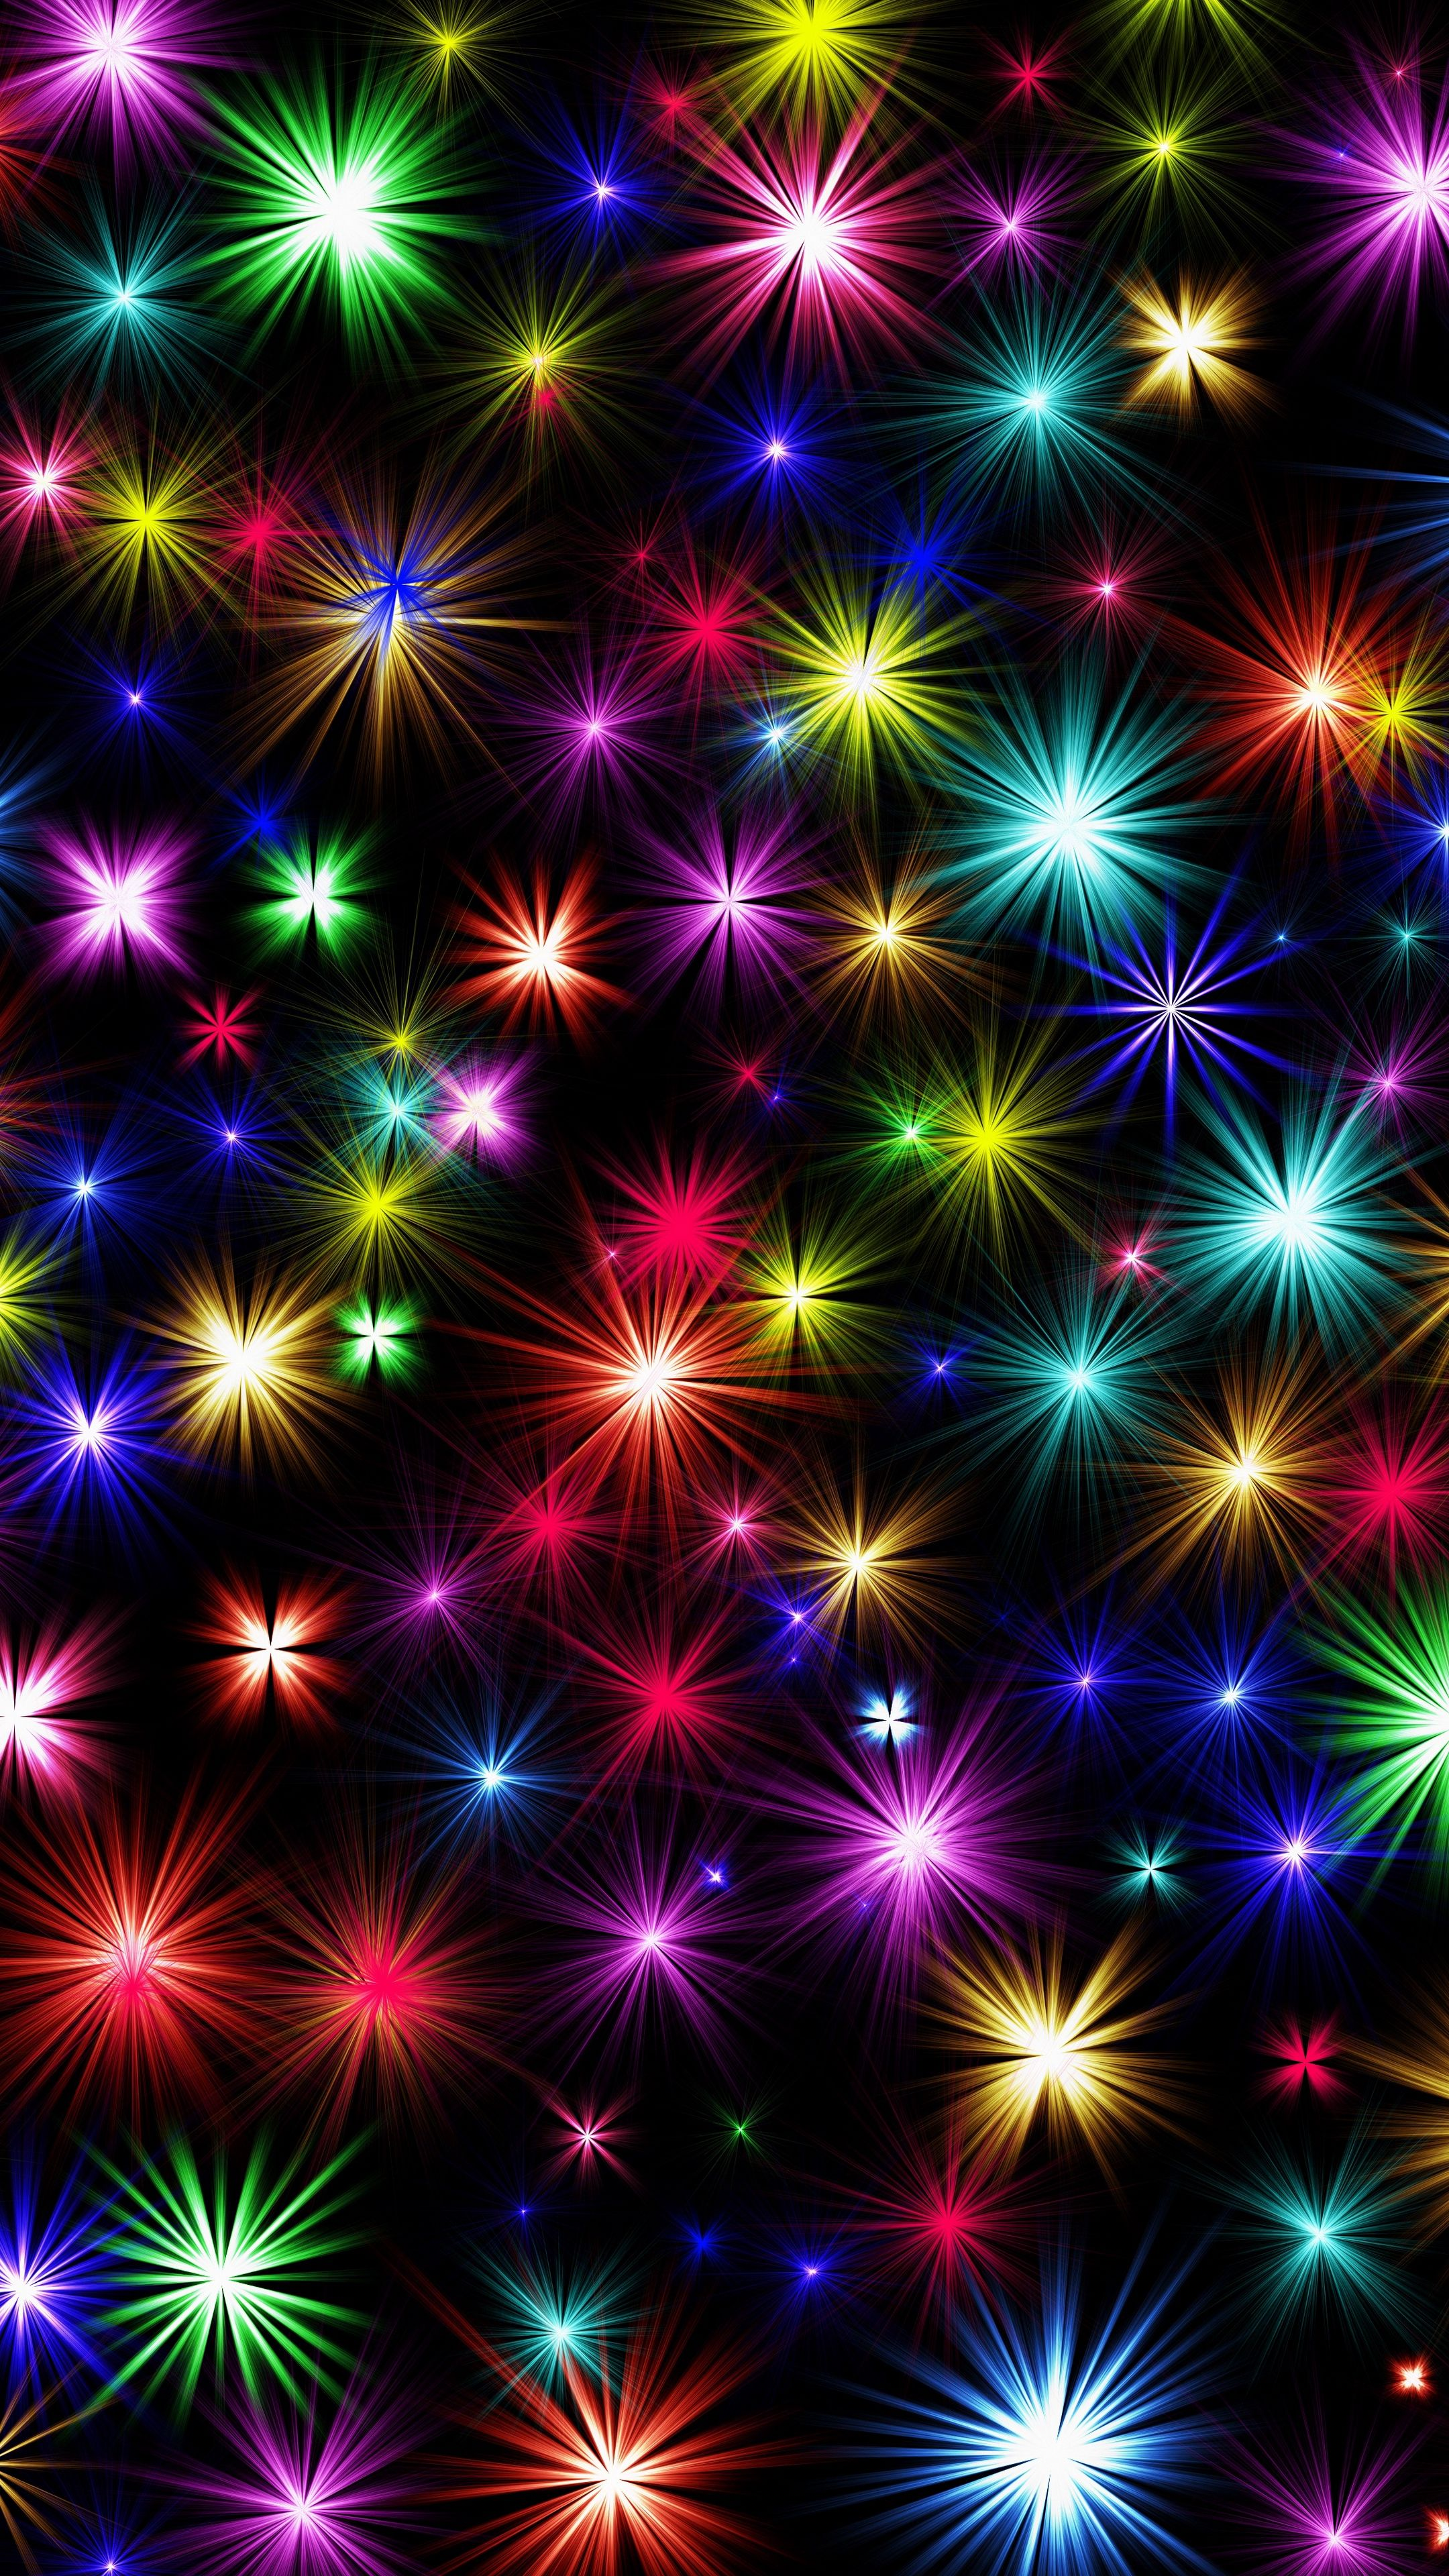 Abstract Sparks Colorful Fireworks Shine Android Wallpapers